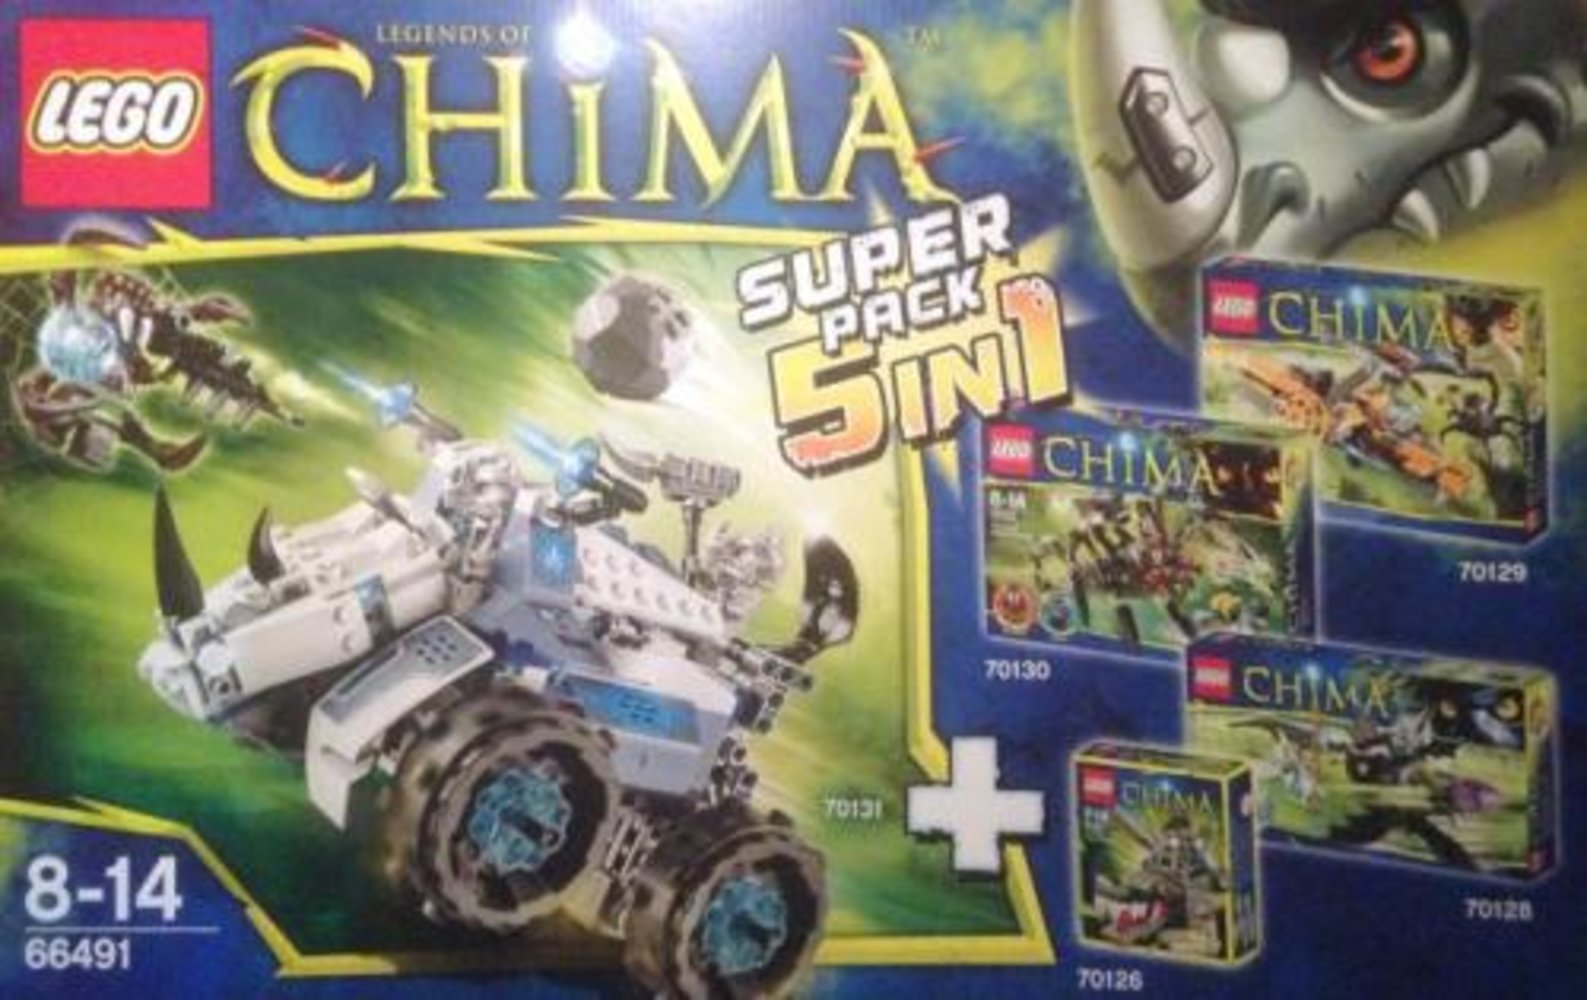 Legends of Chima Super Pack 5 in 1